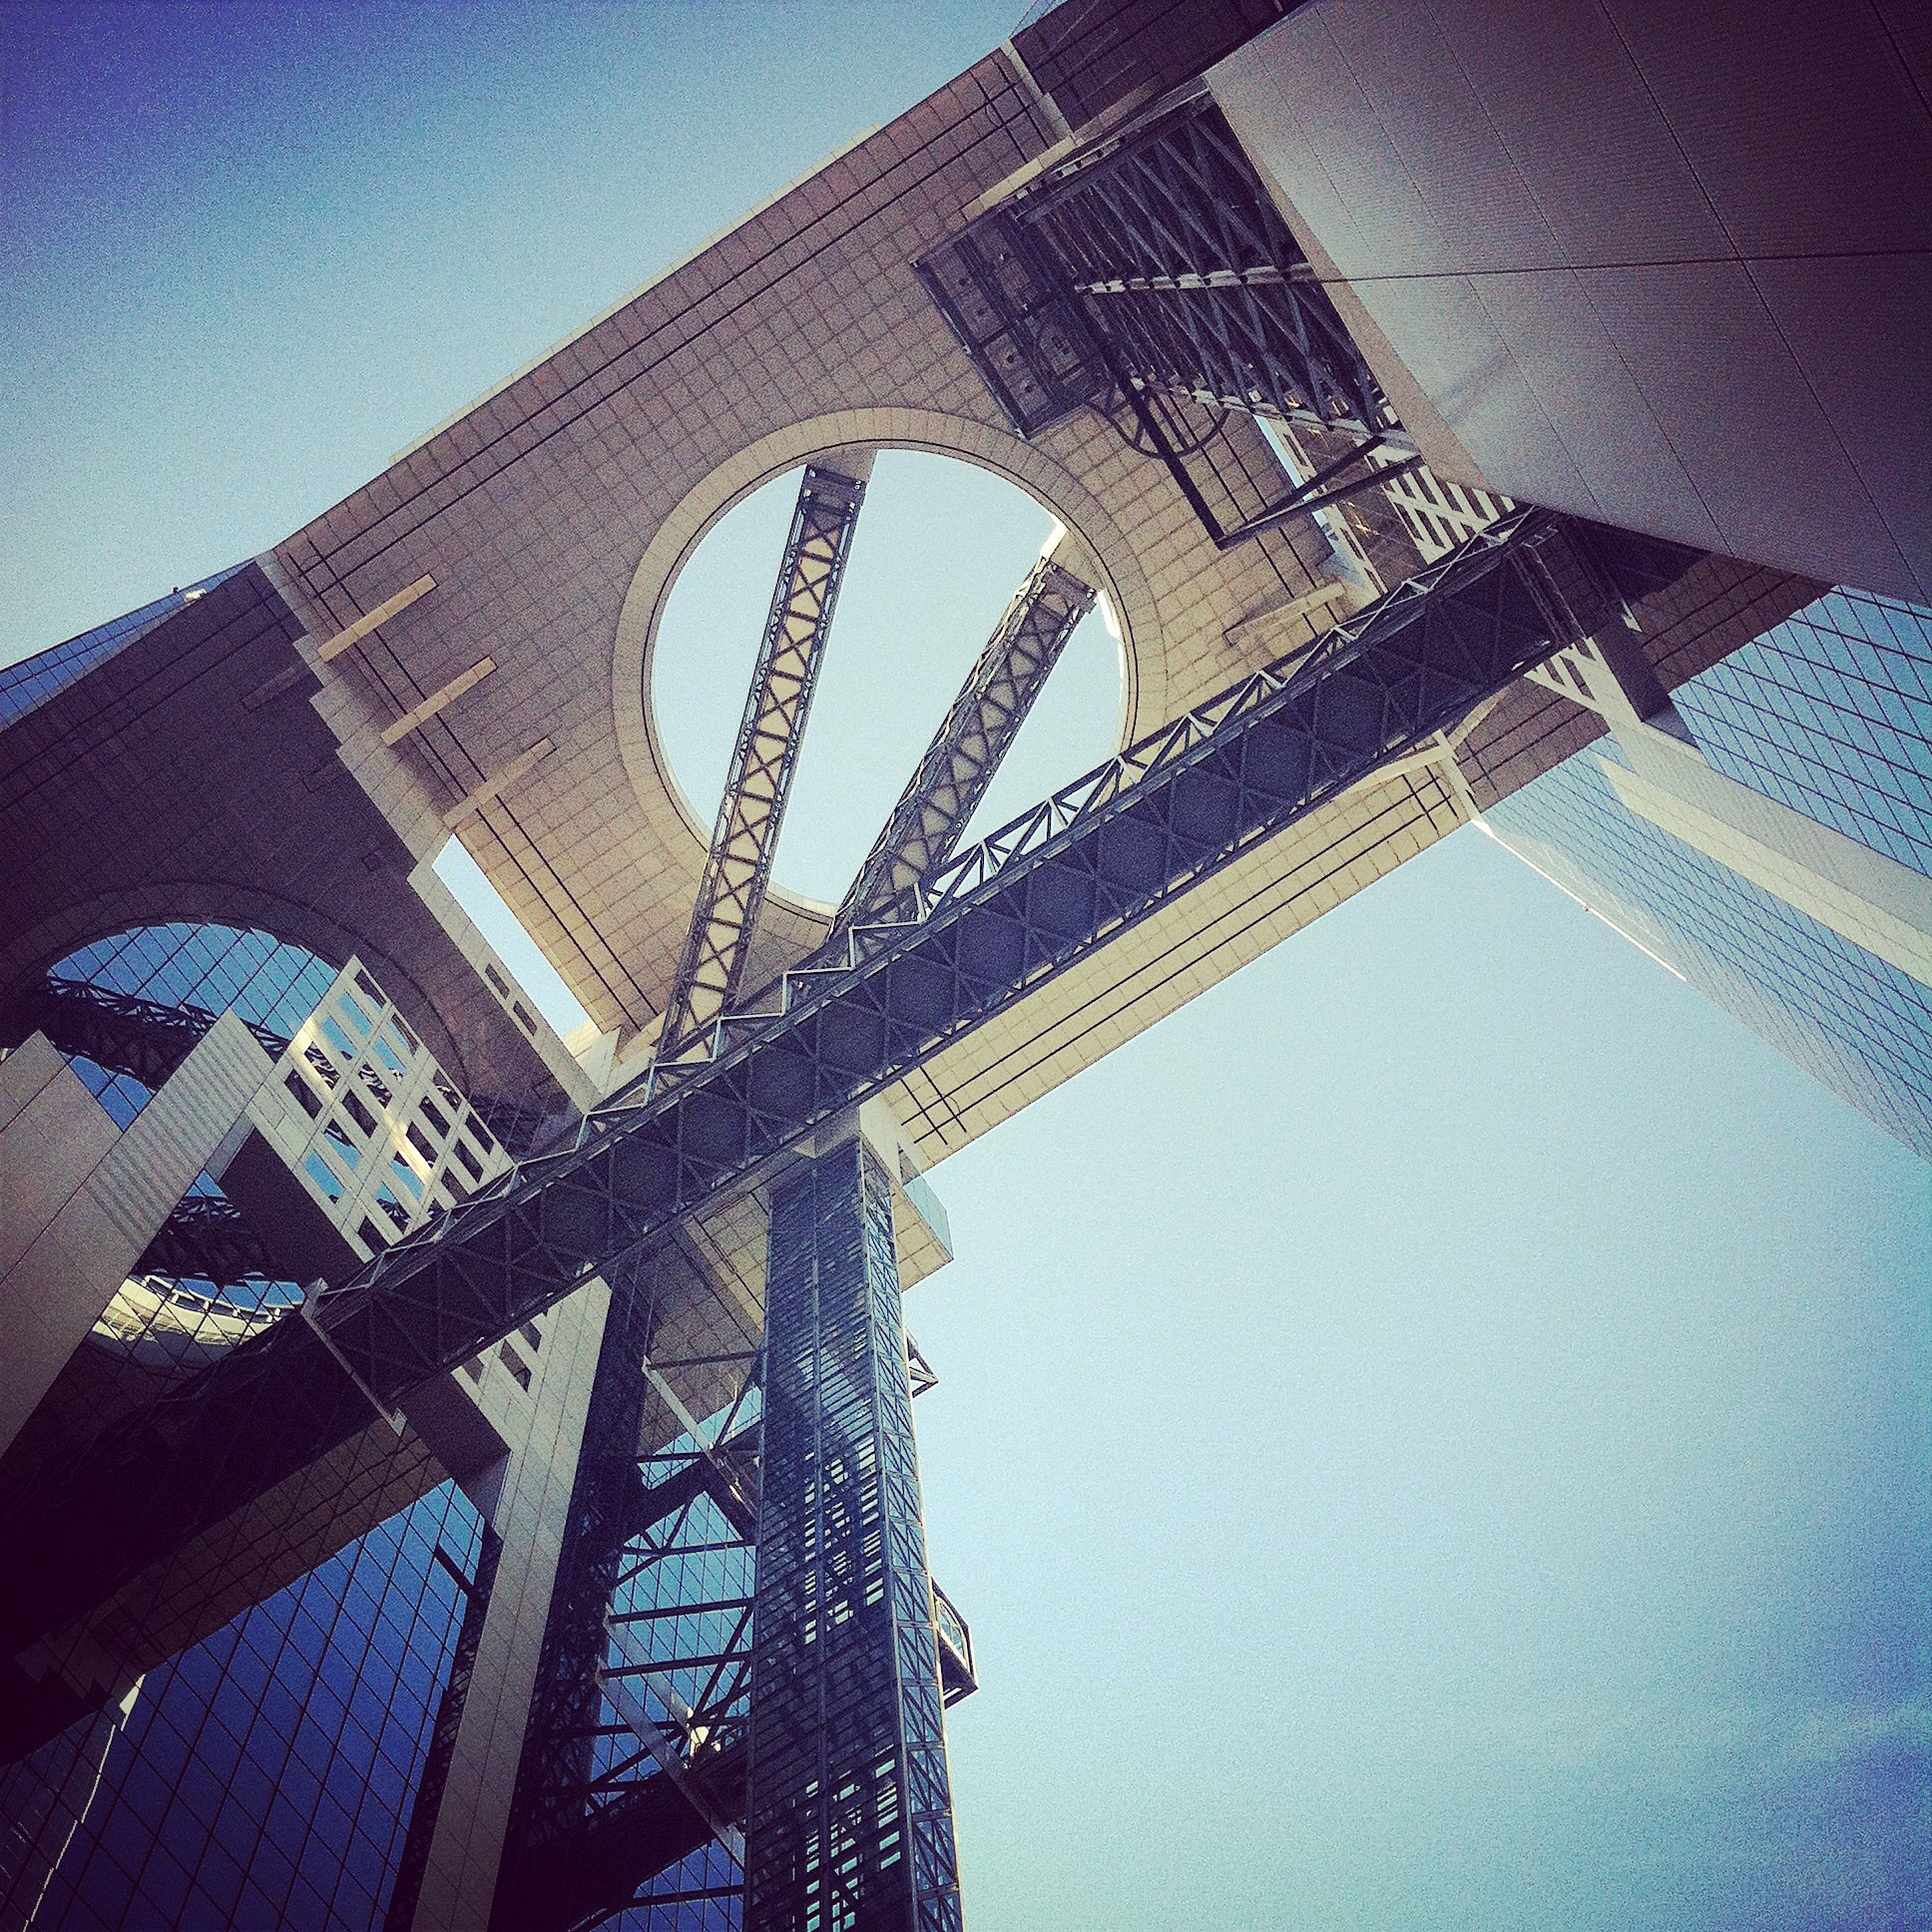 Umeda Sky Building from below